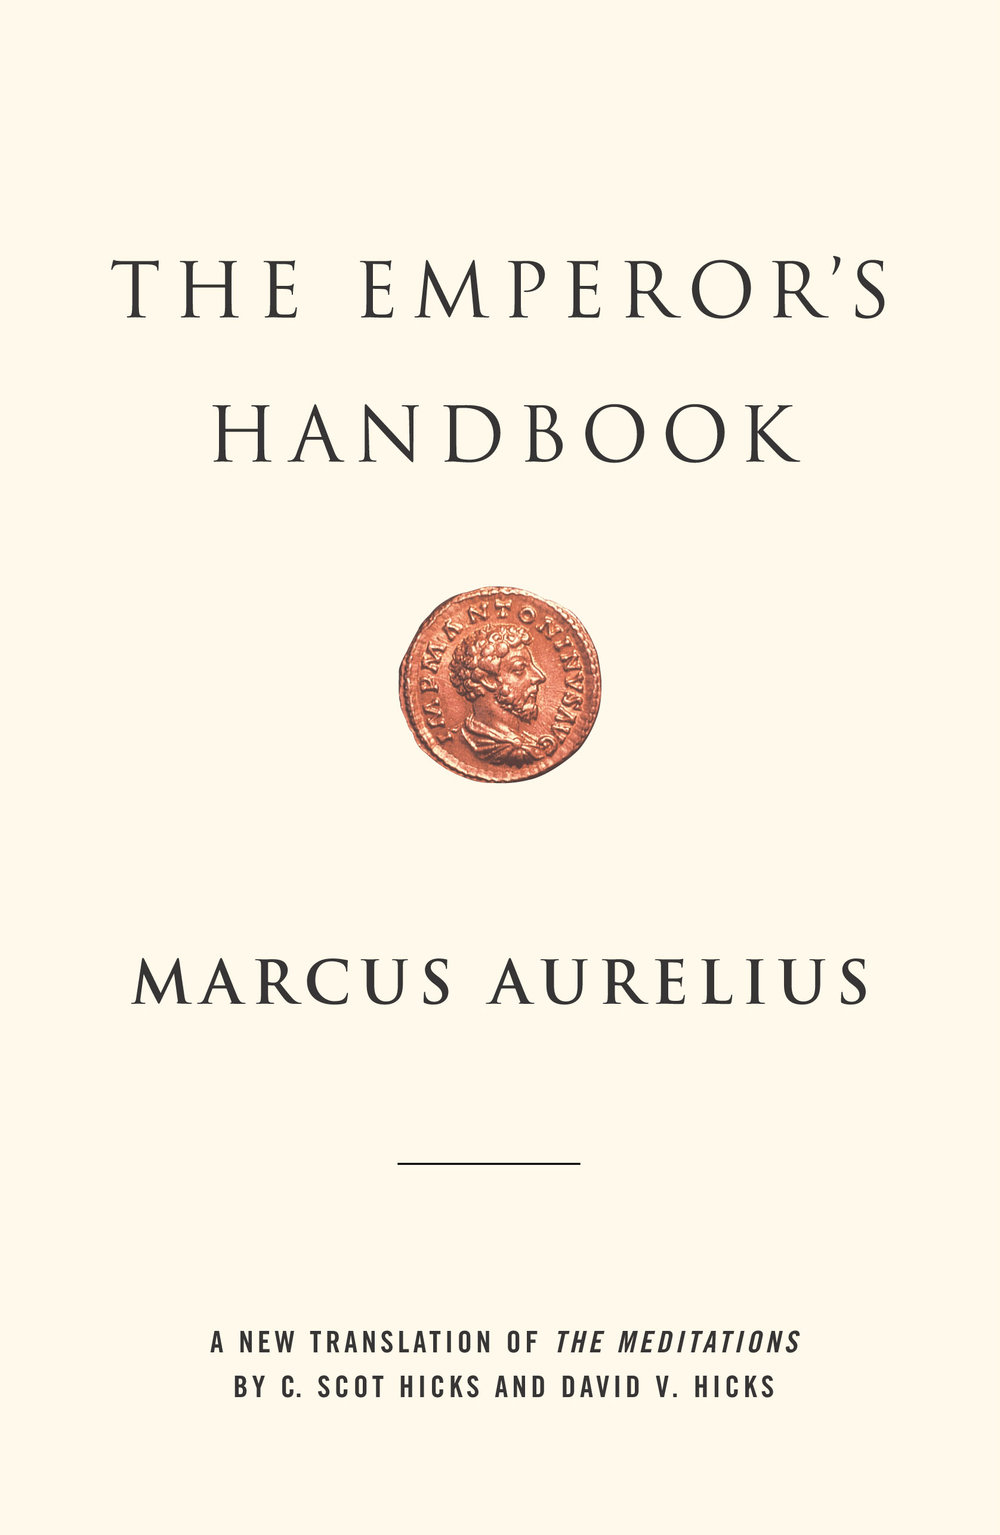 The Emperor's Handbook: A New Translation of The Meditations - I first learned of this book from reading the writing of one of my favorite authors, Ryan Holiday, who stated that